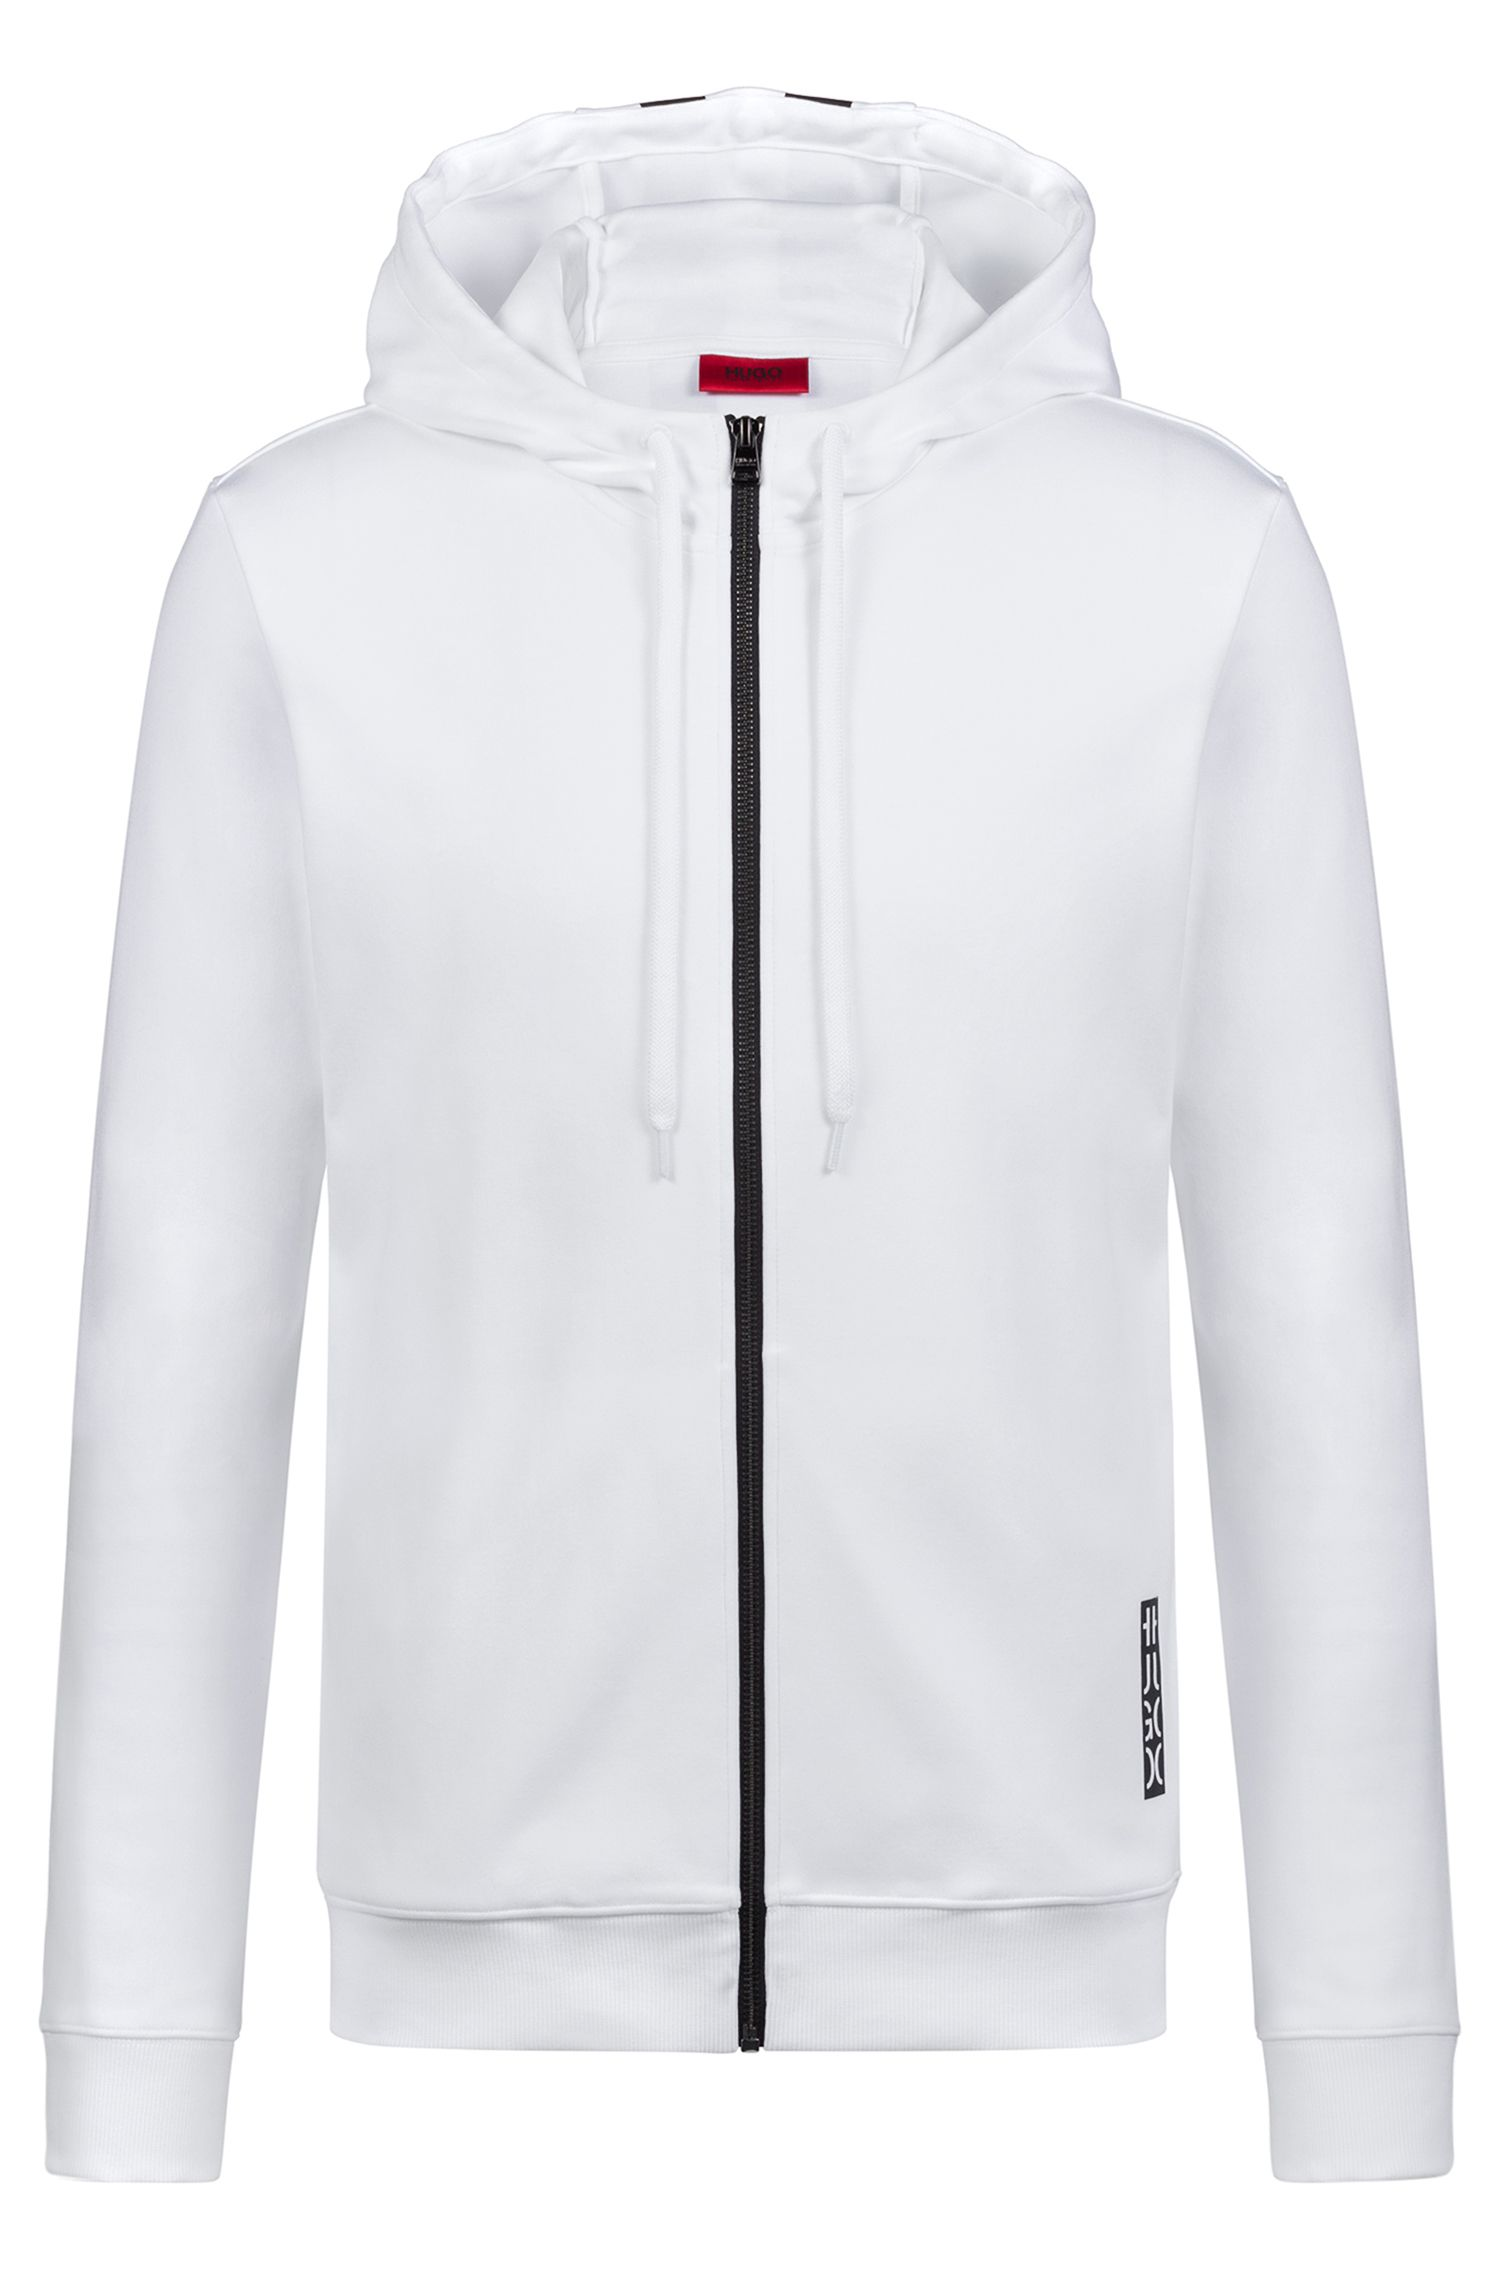 Hooded sweatshirt in cotton with large-scale cropped logo, White